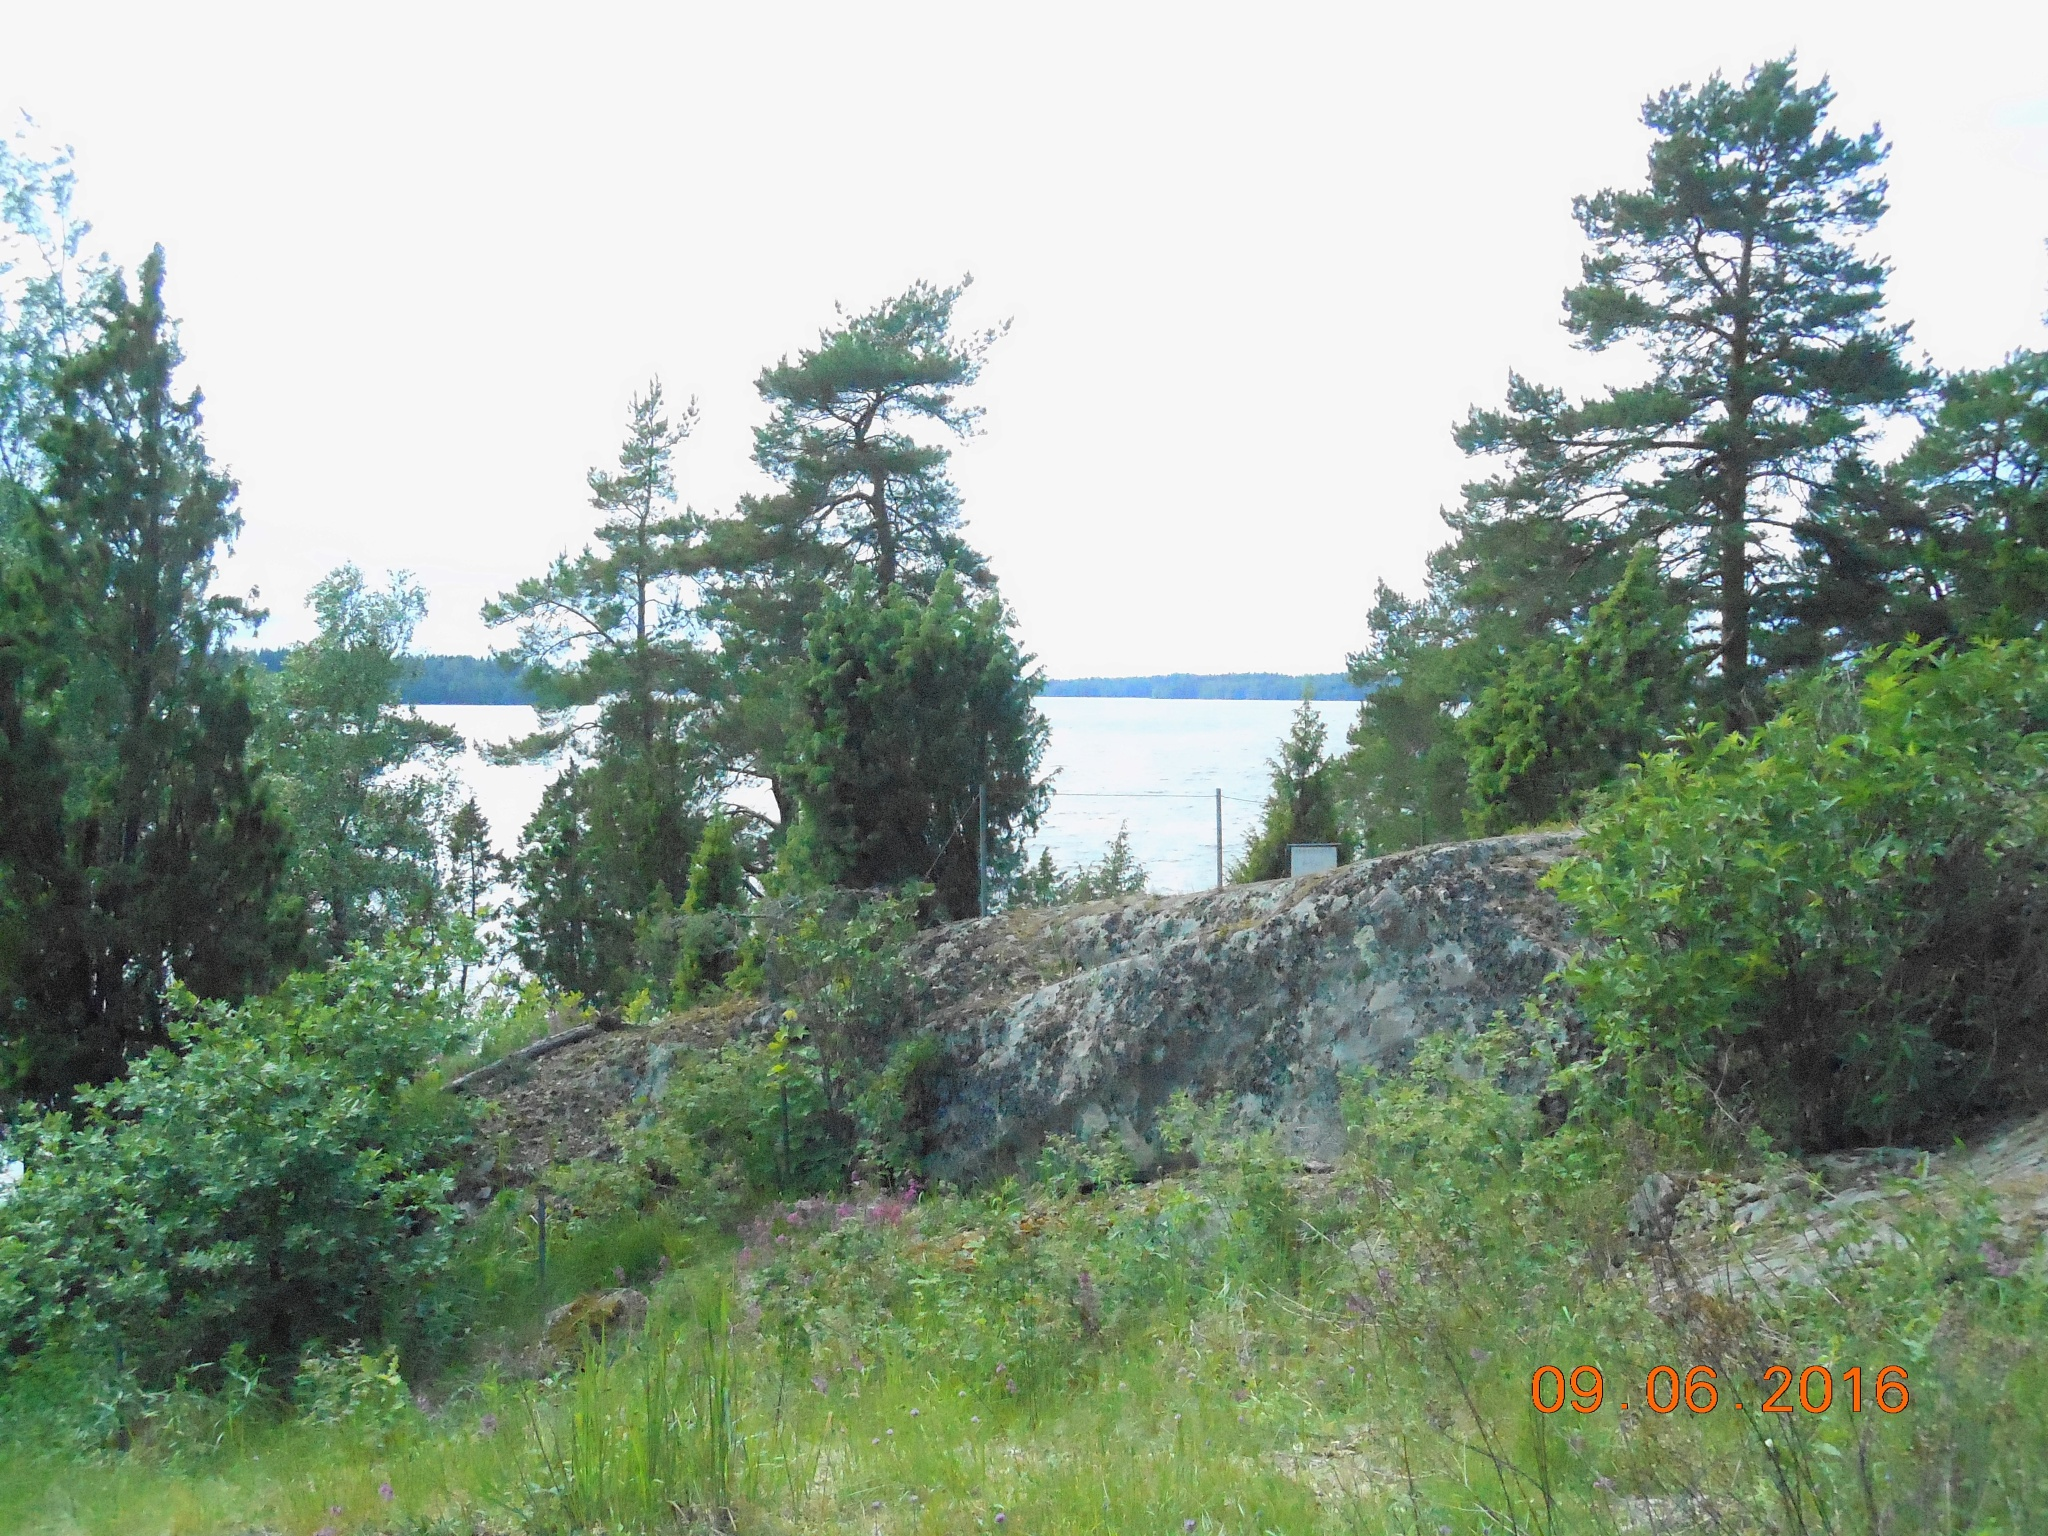 The Landscape in Visavuori, Finland to Vanajavesi Lake by ailahokkanen59